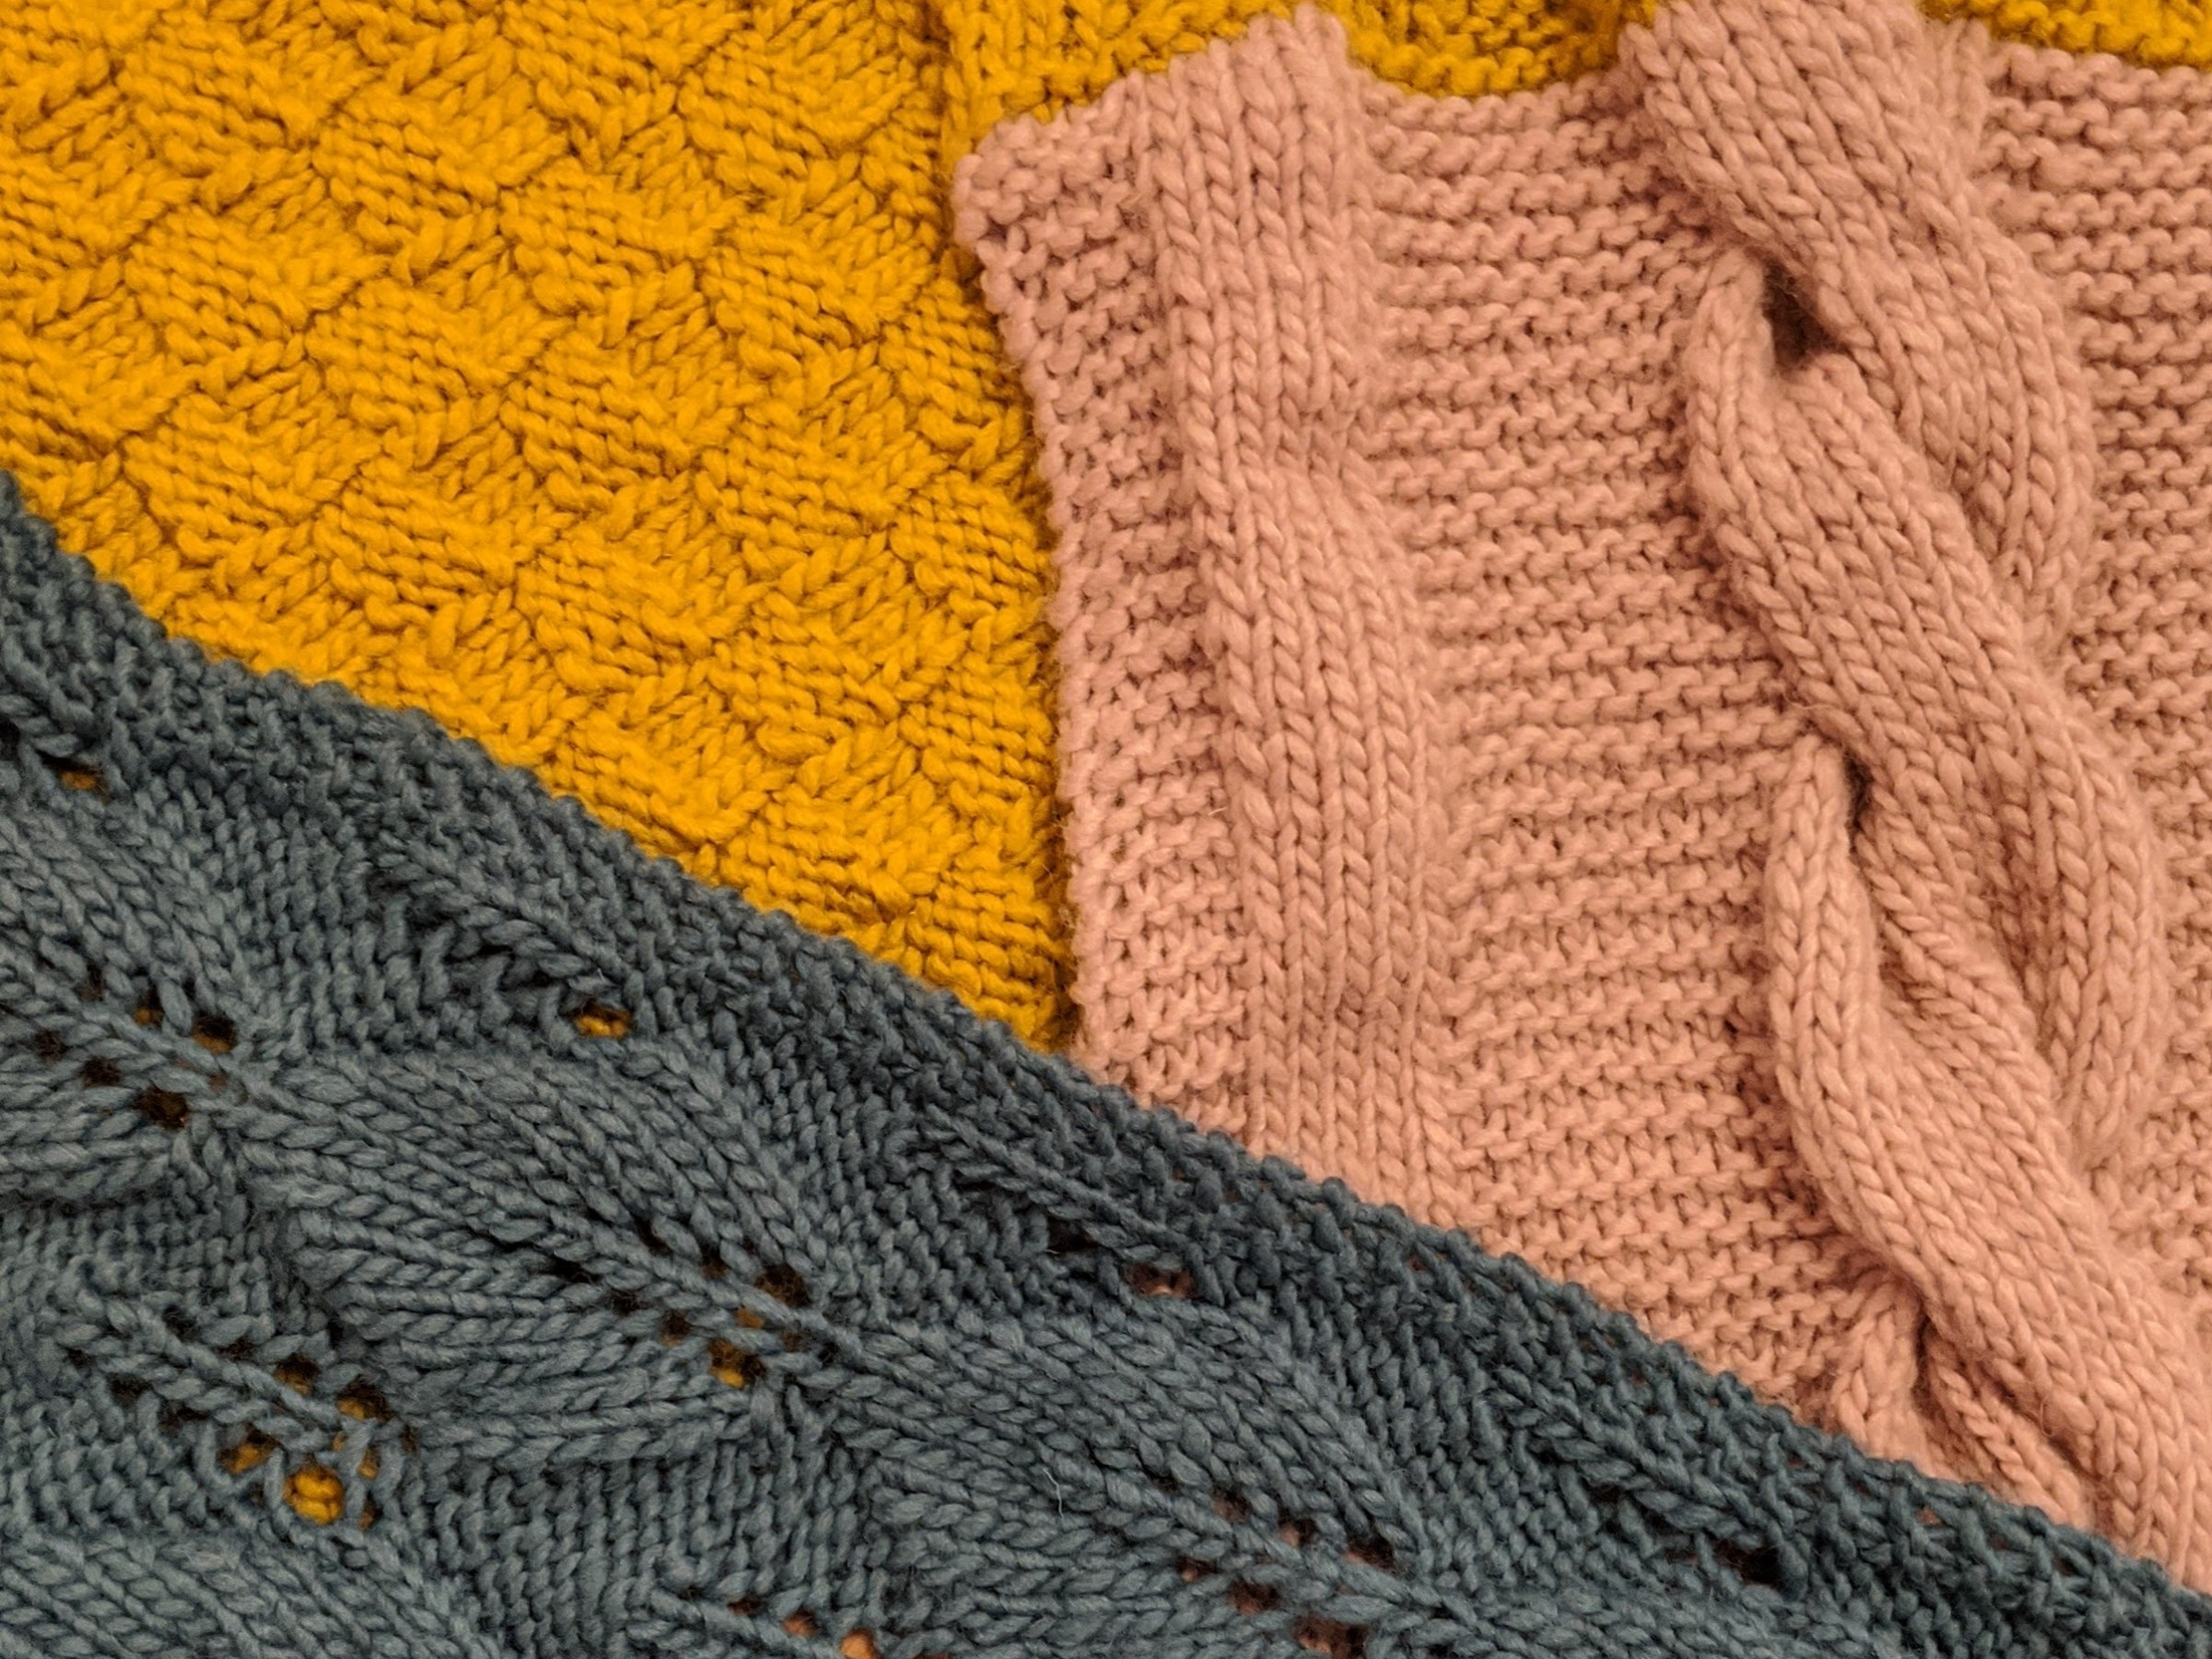 Sections of different texture knitting